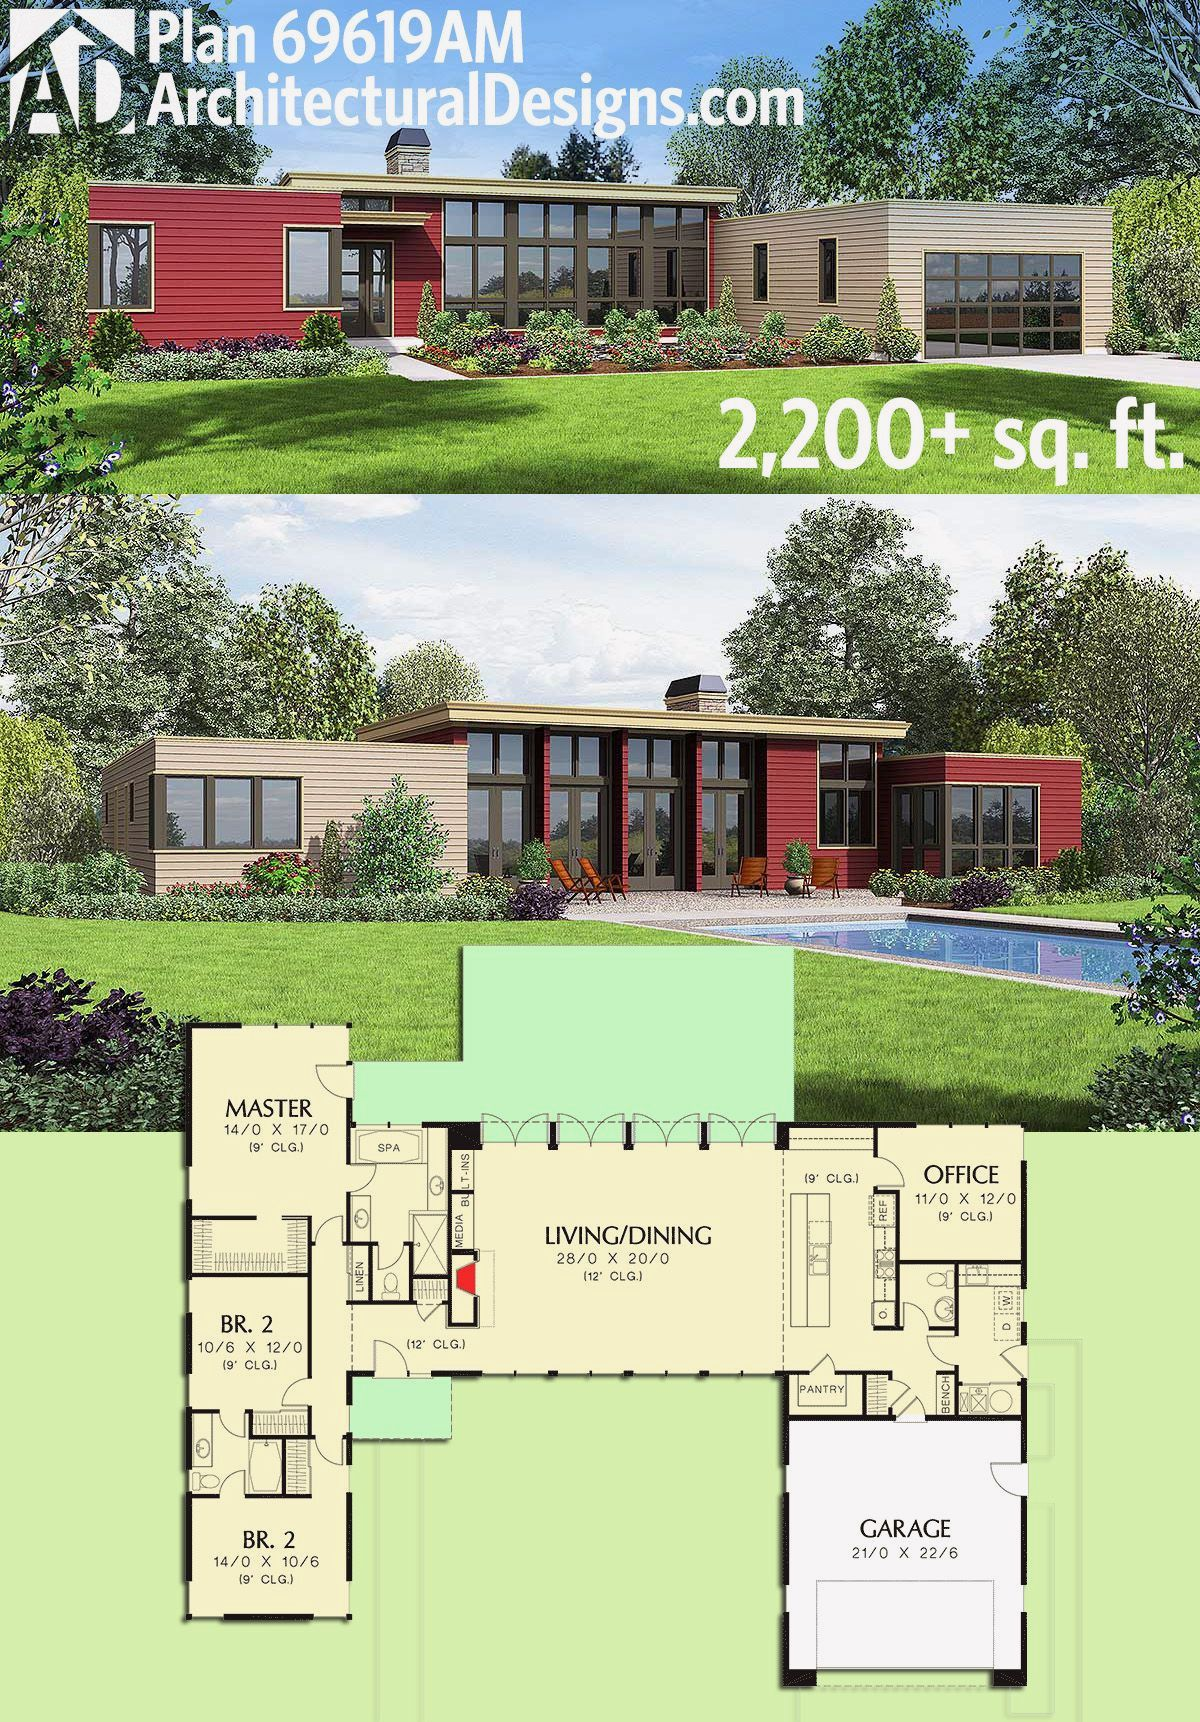 18 One Floor House Design Modern Container House Plans Modern House Plan House Plans One Story